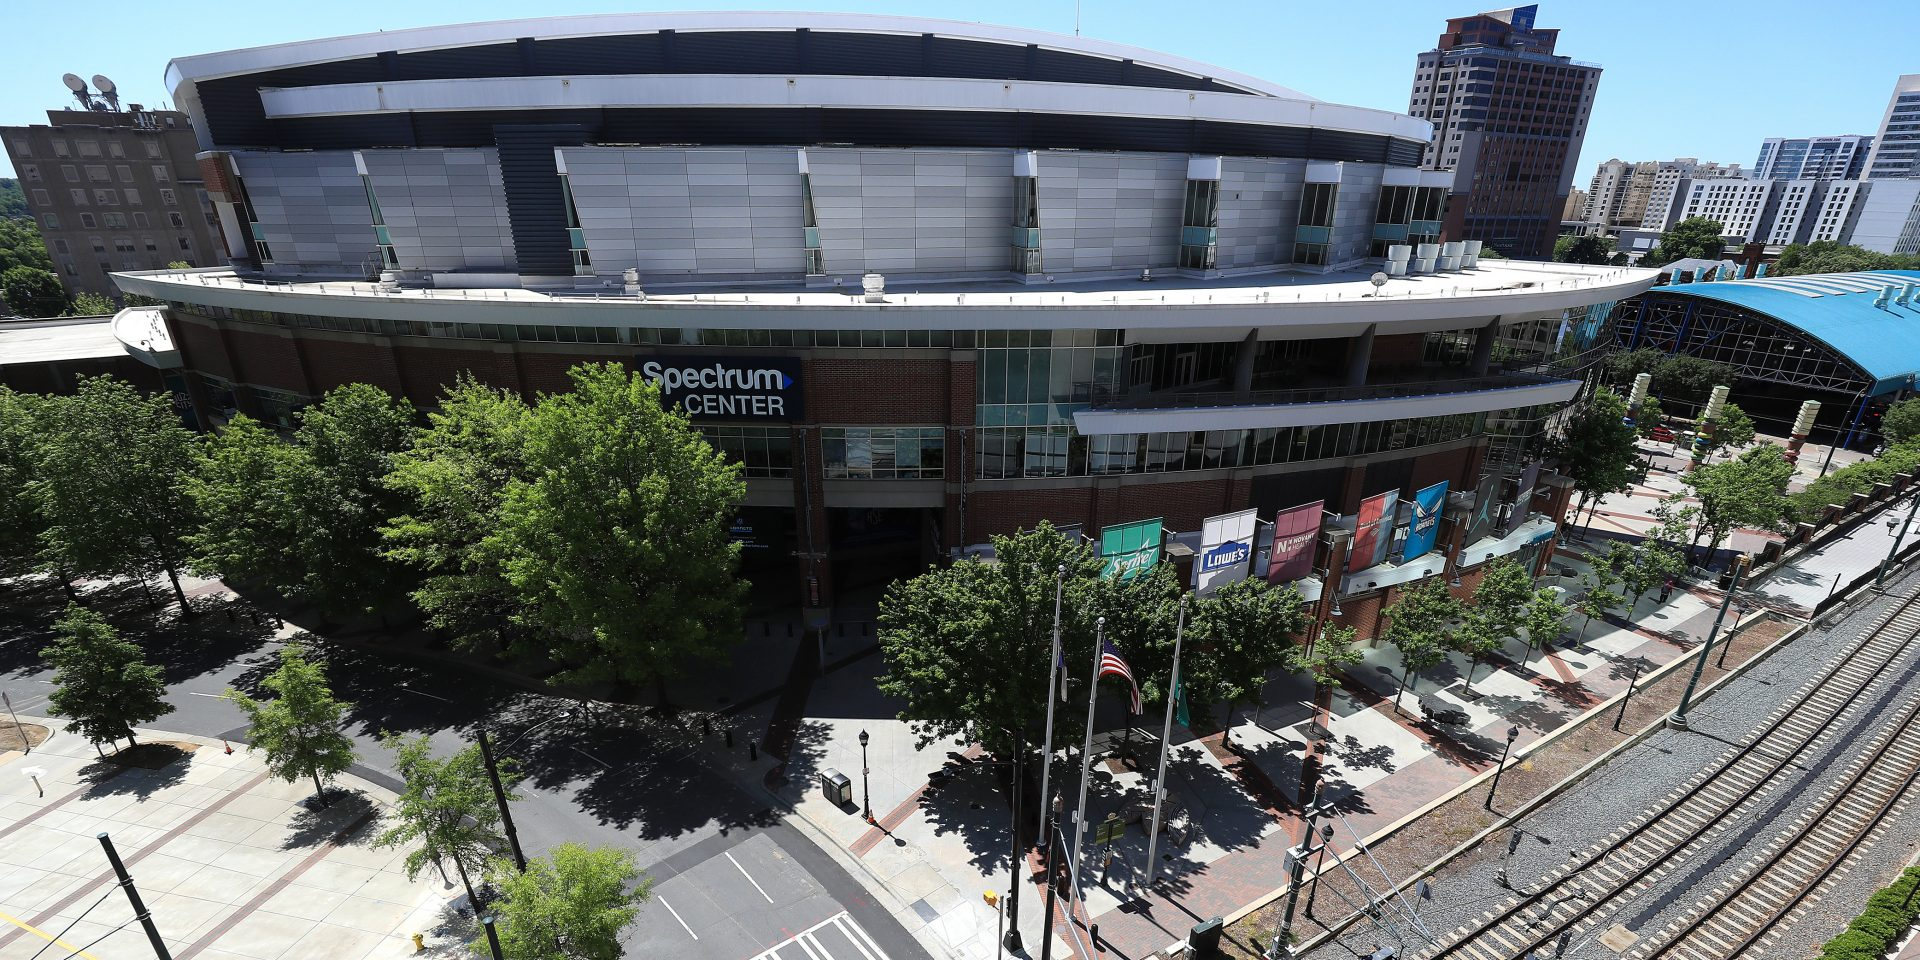 Release Roundup: Spectrum Center Adding 5G